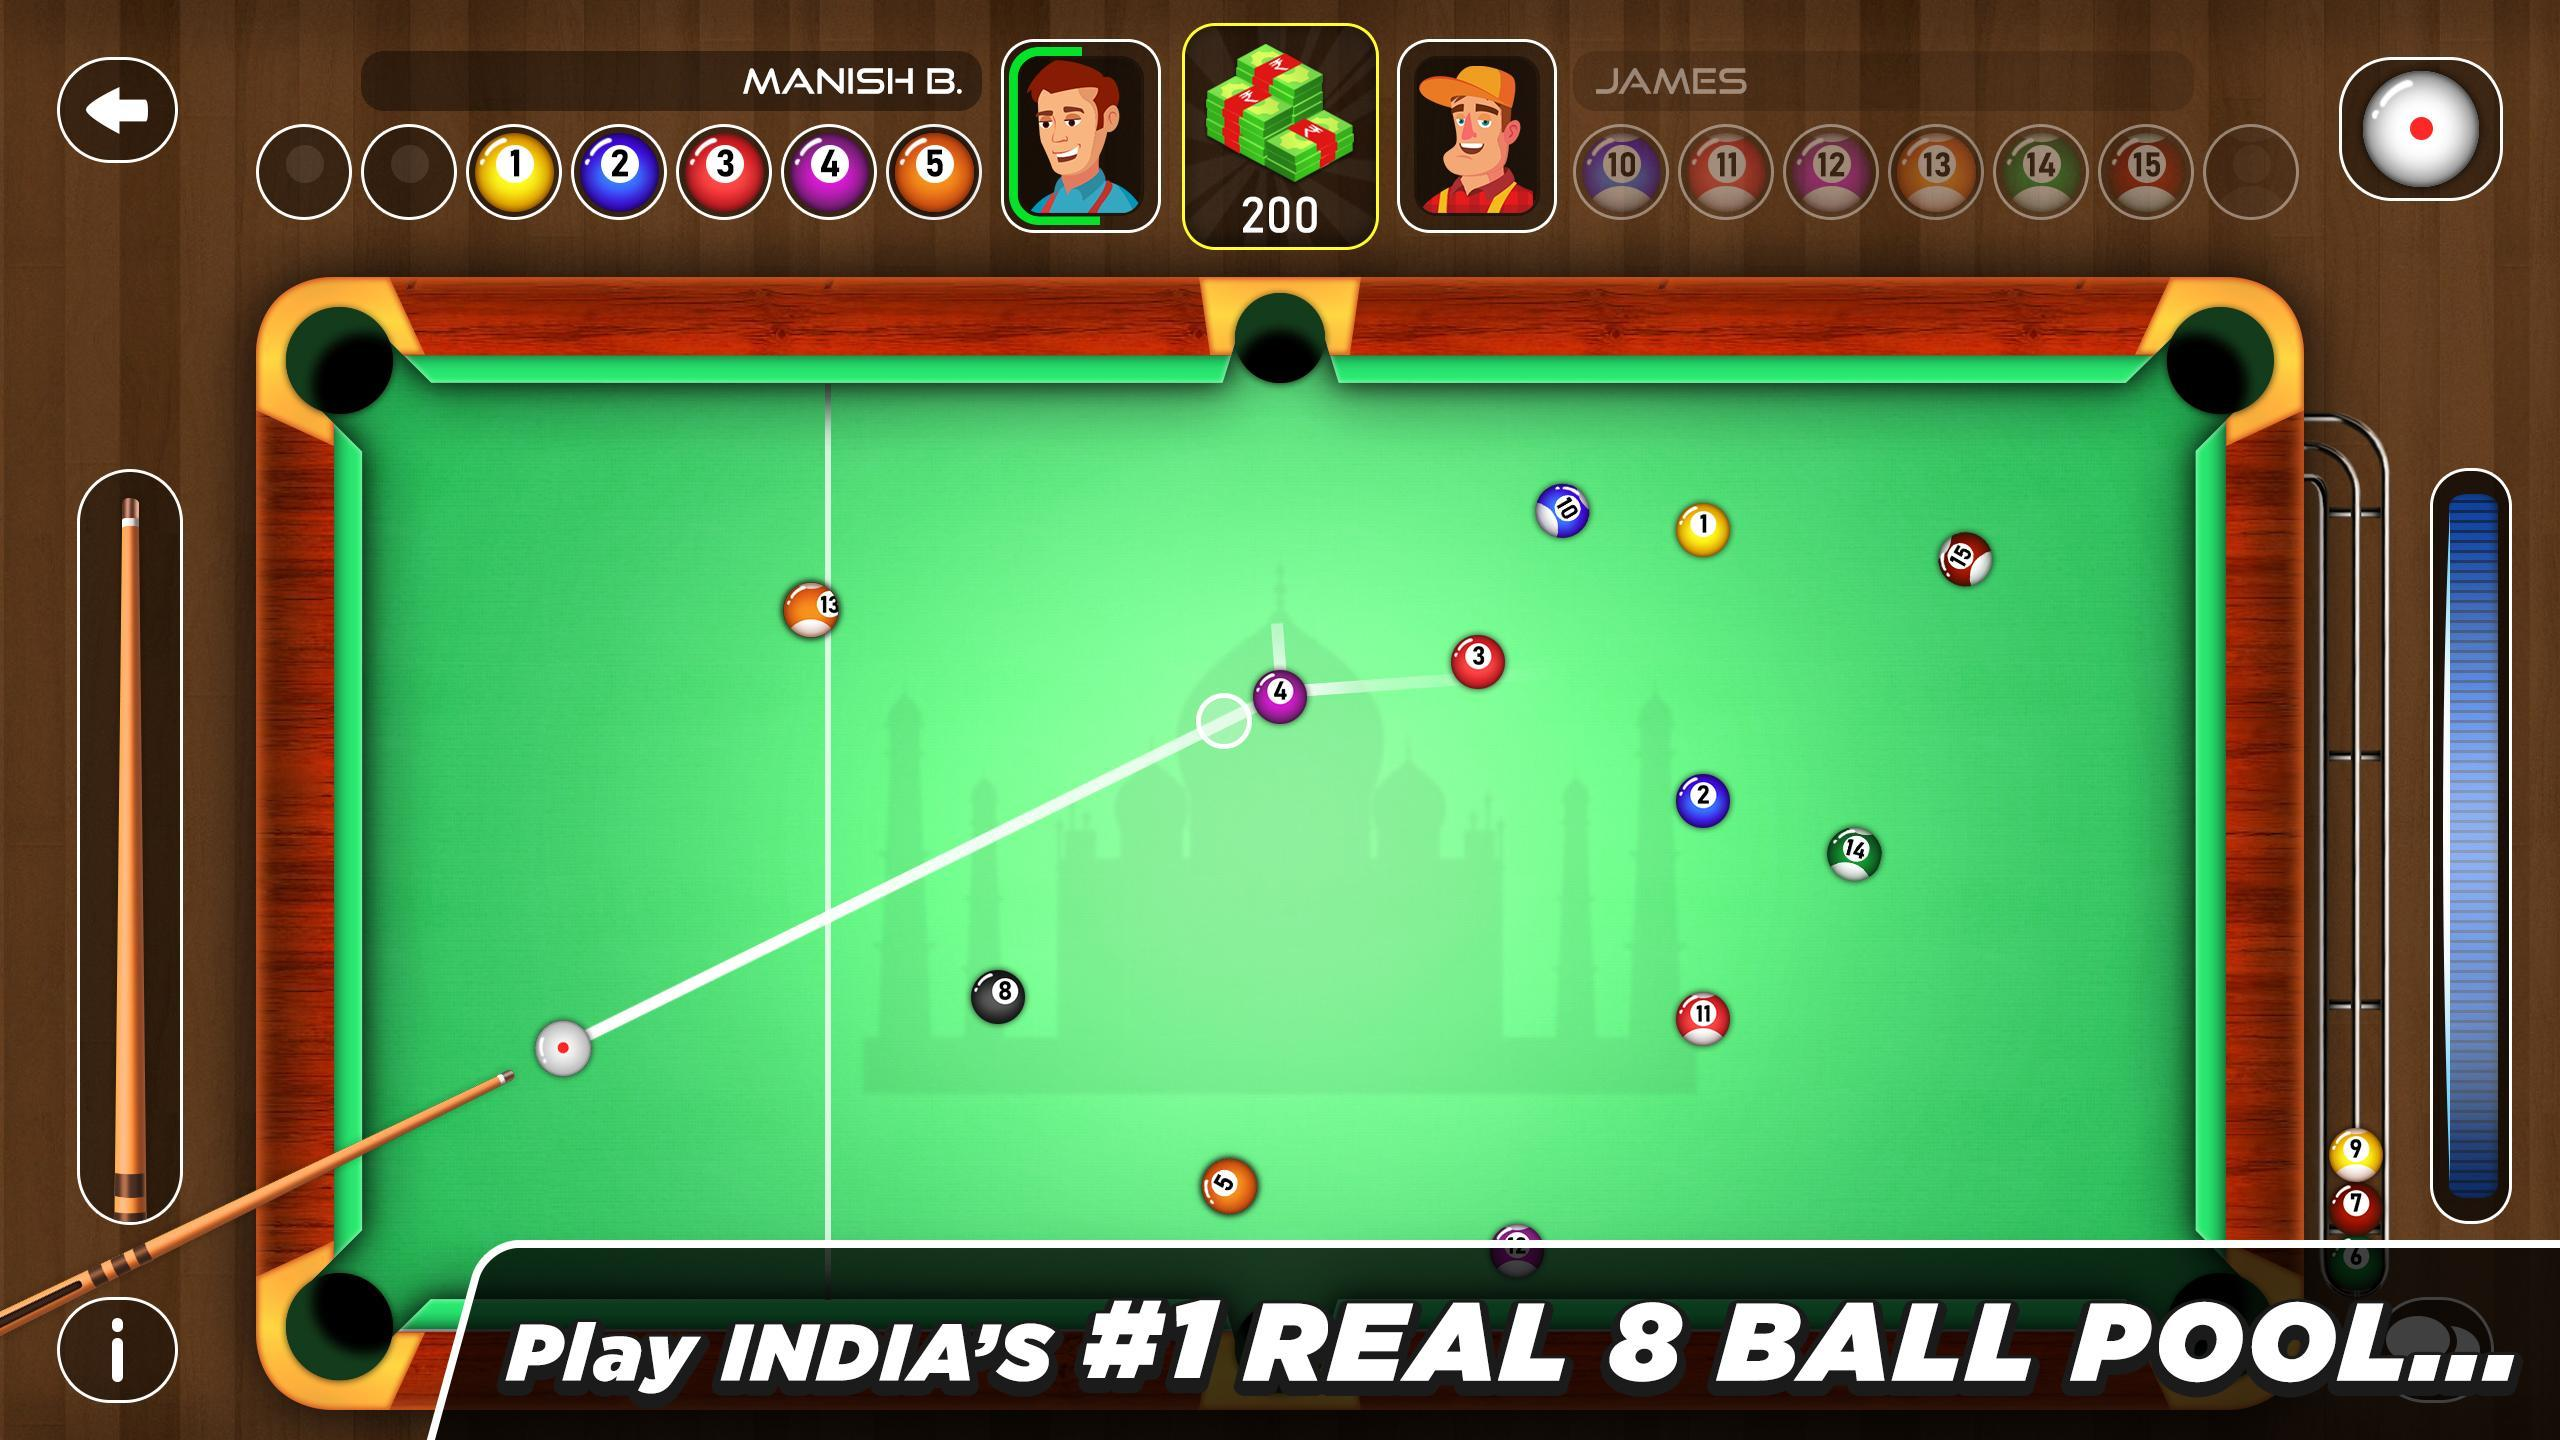 Real 8 Ball Pool for Android - APK Download